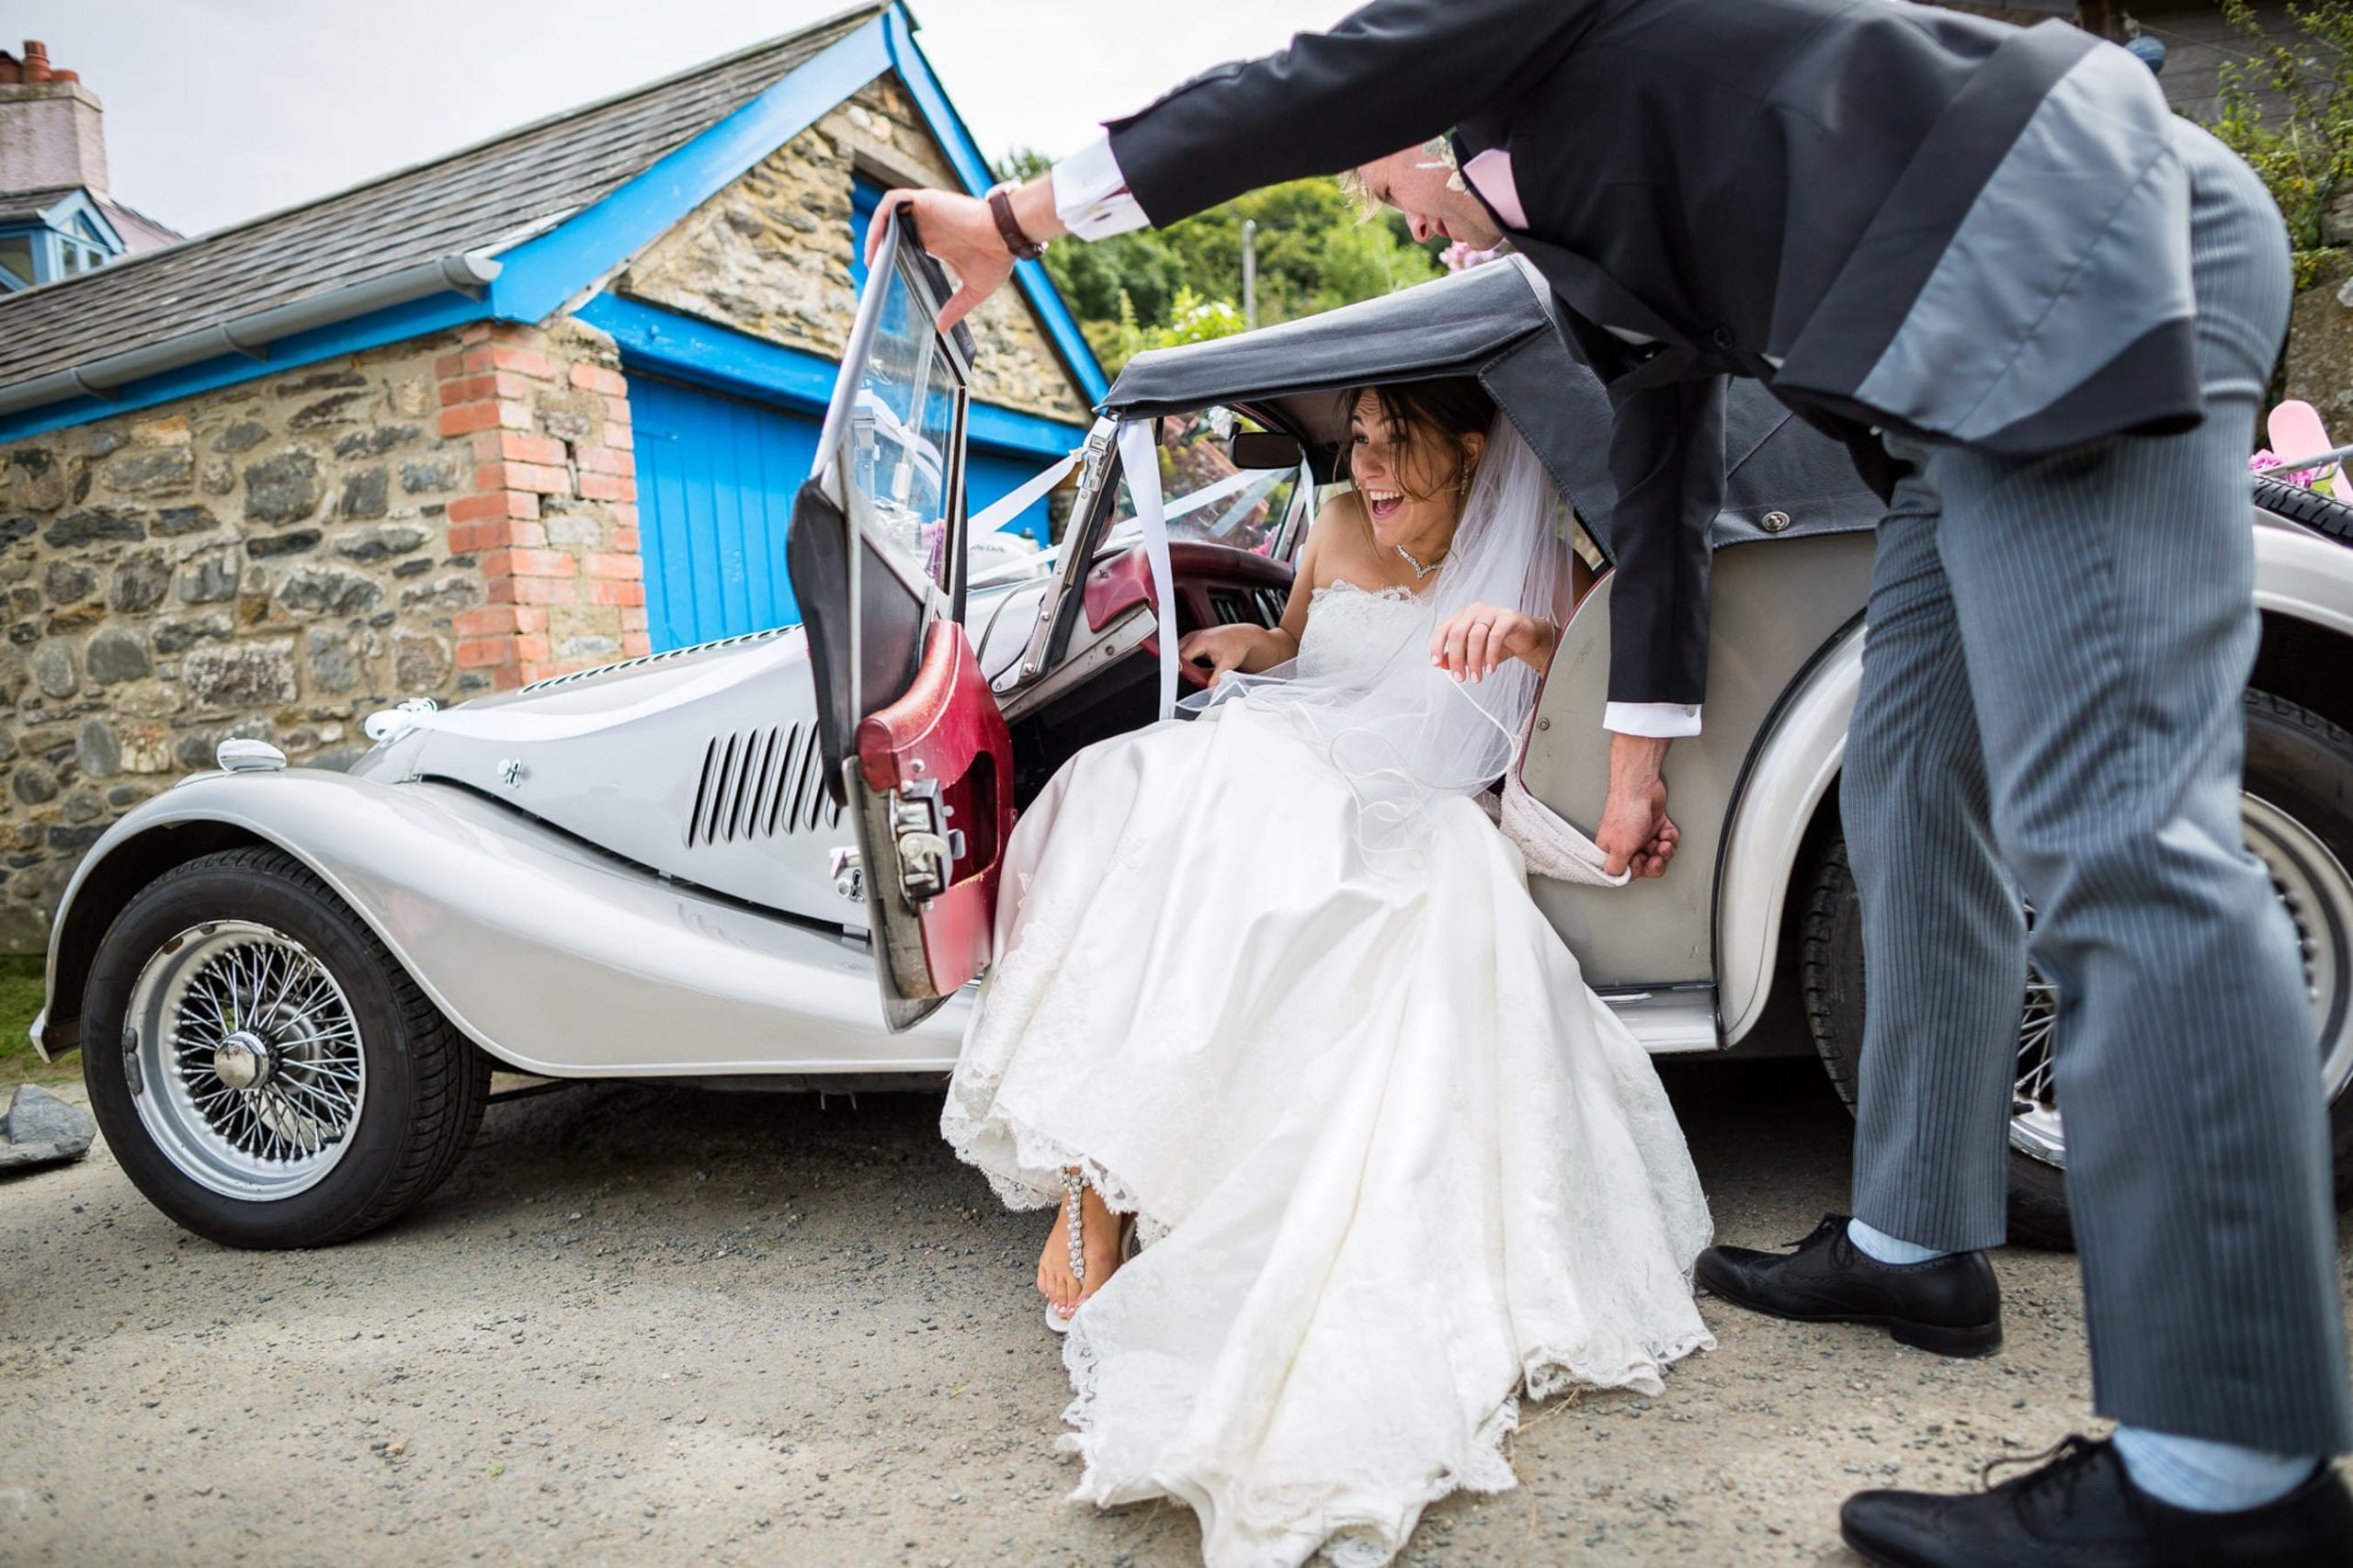 Cotswolds Wedding Photographers in Fishguard, Wales. A bride getting out of a low sports car, with help from the groom.